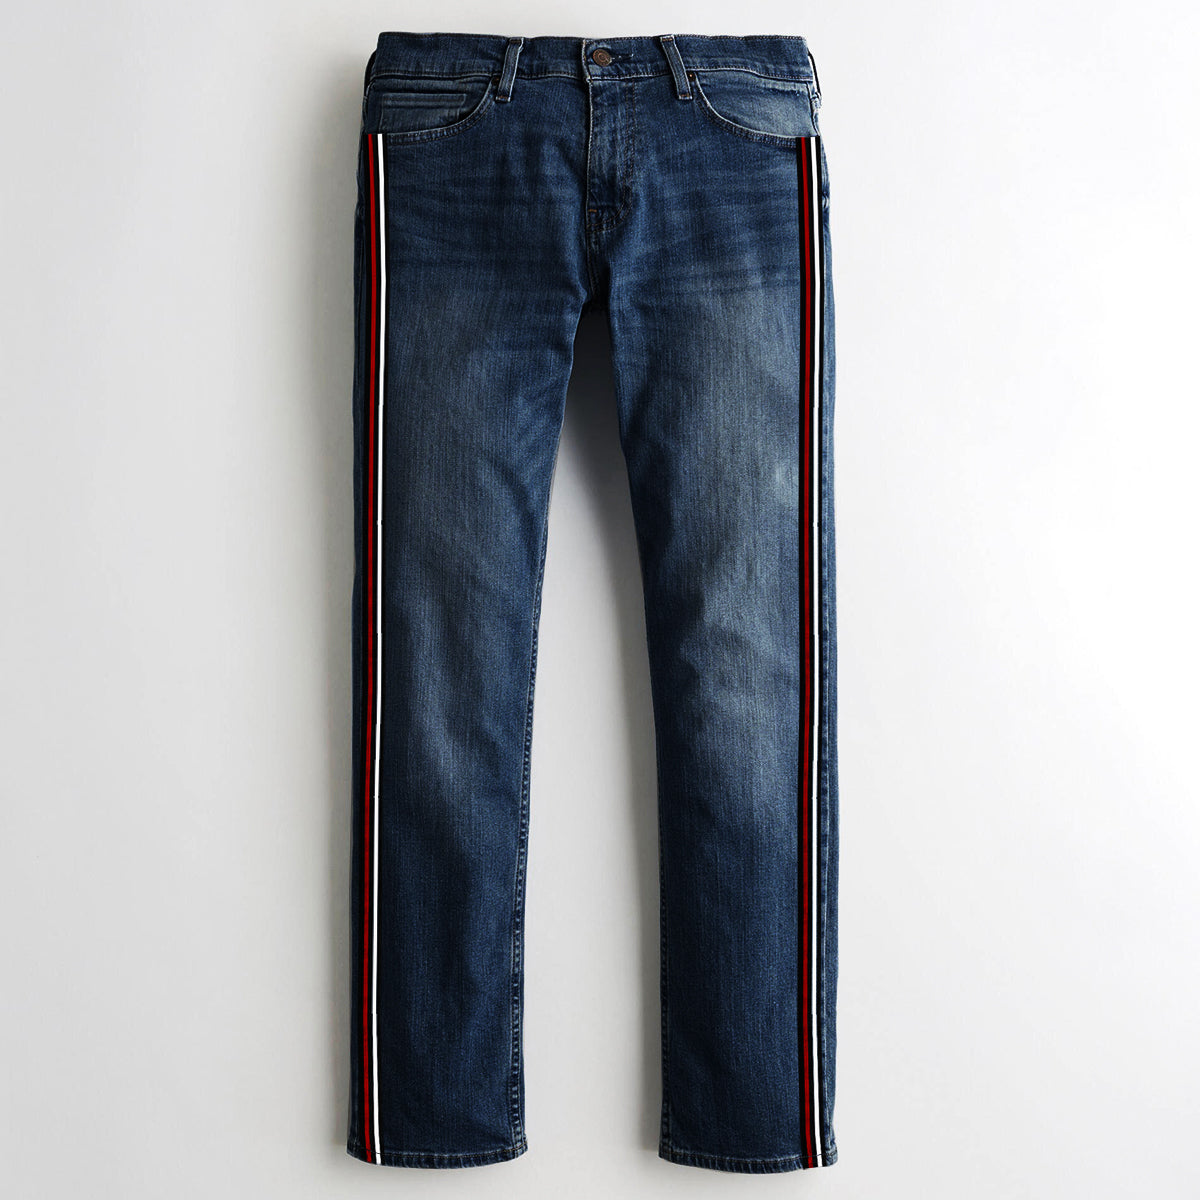 Conbipel Slim Fit Non Stretch Side Stripe Denim For Men-(S3)-Blue Faded-NA9407